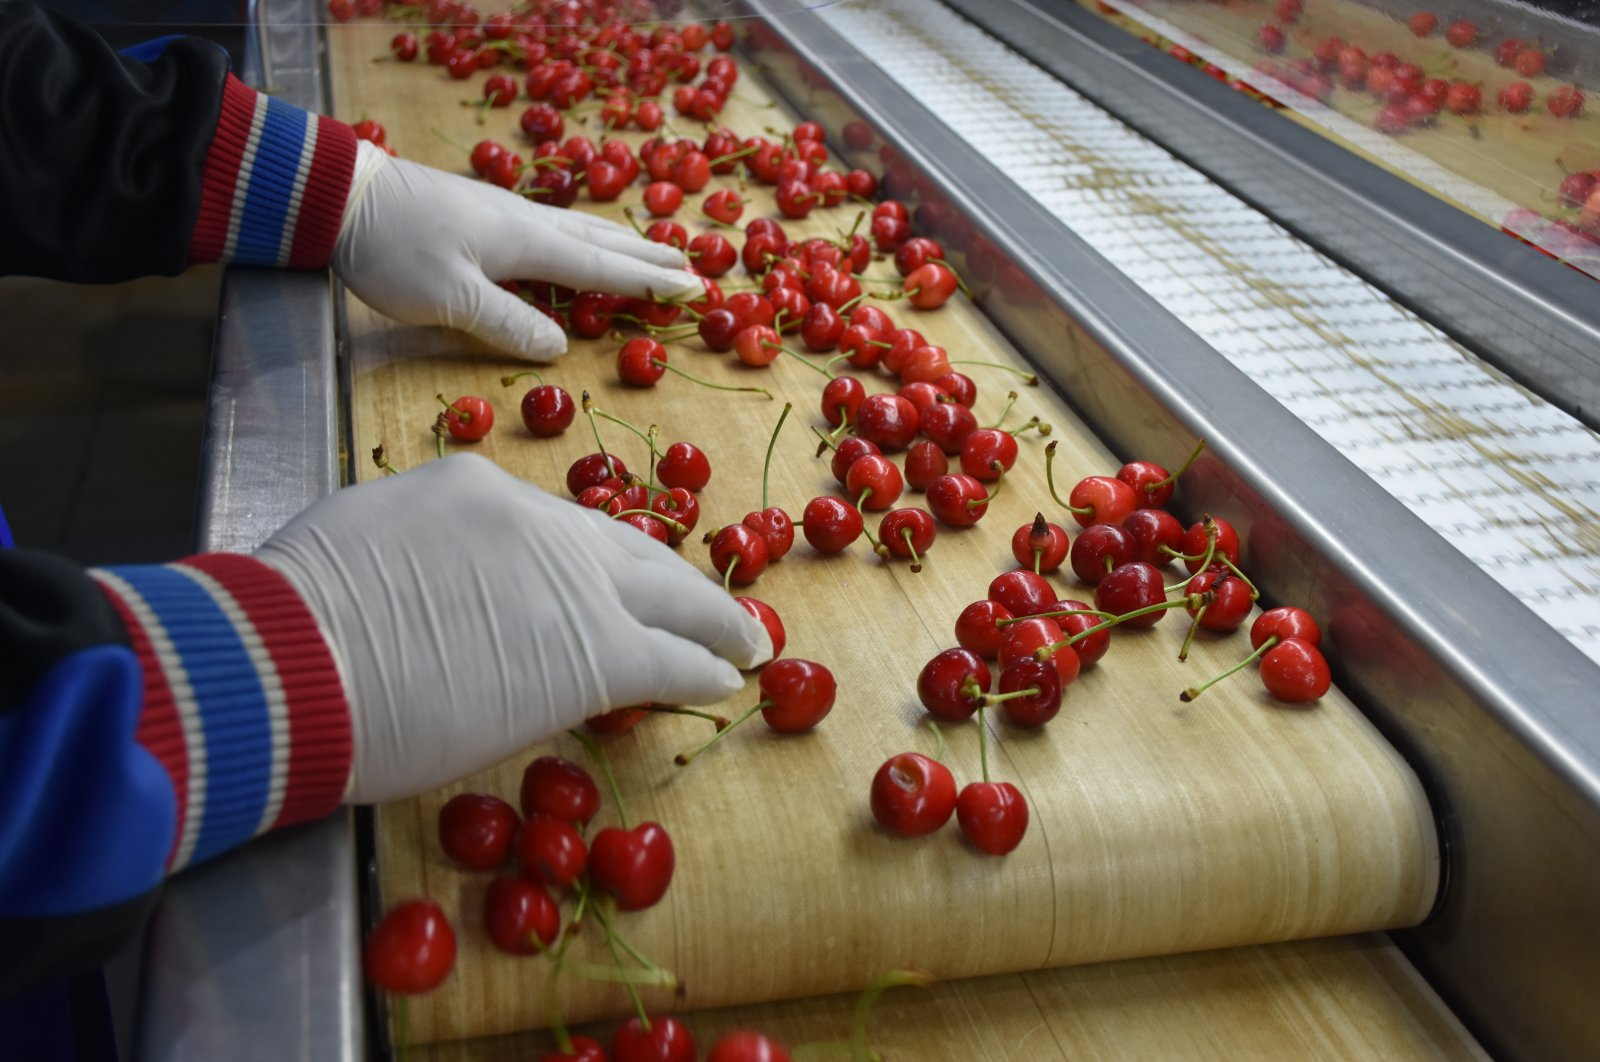 A worker checks cherries before distribution at a factory, southern Manisa province, Turkey, May 24 2020. (AA Photo)